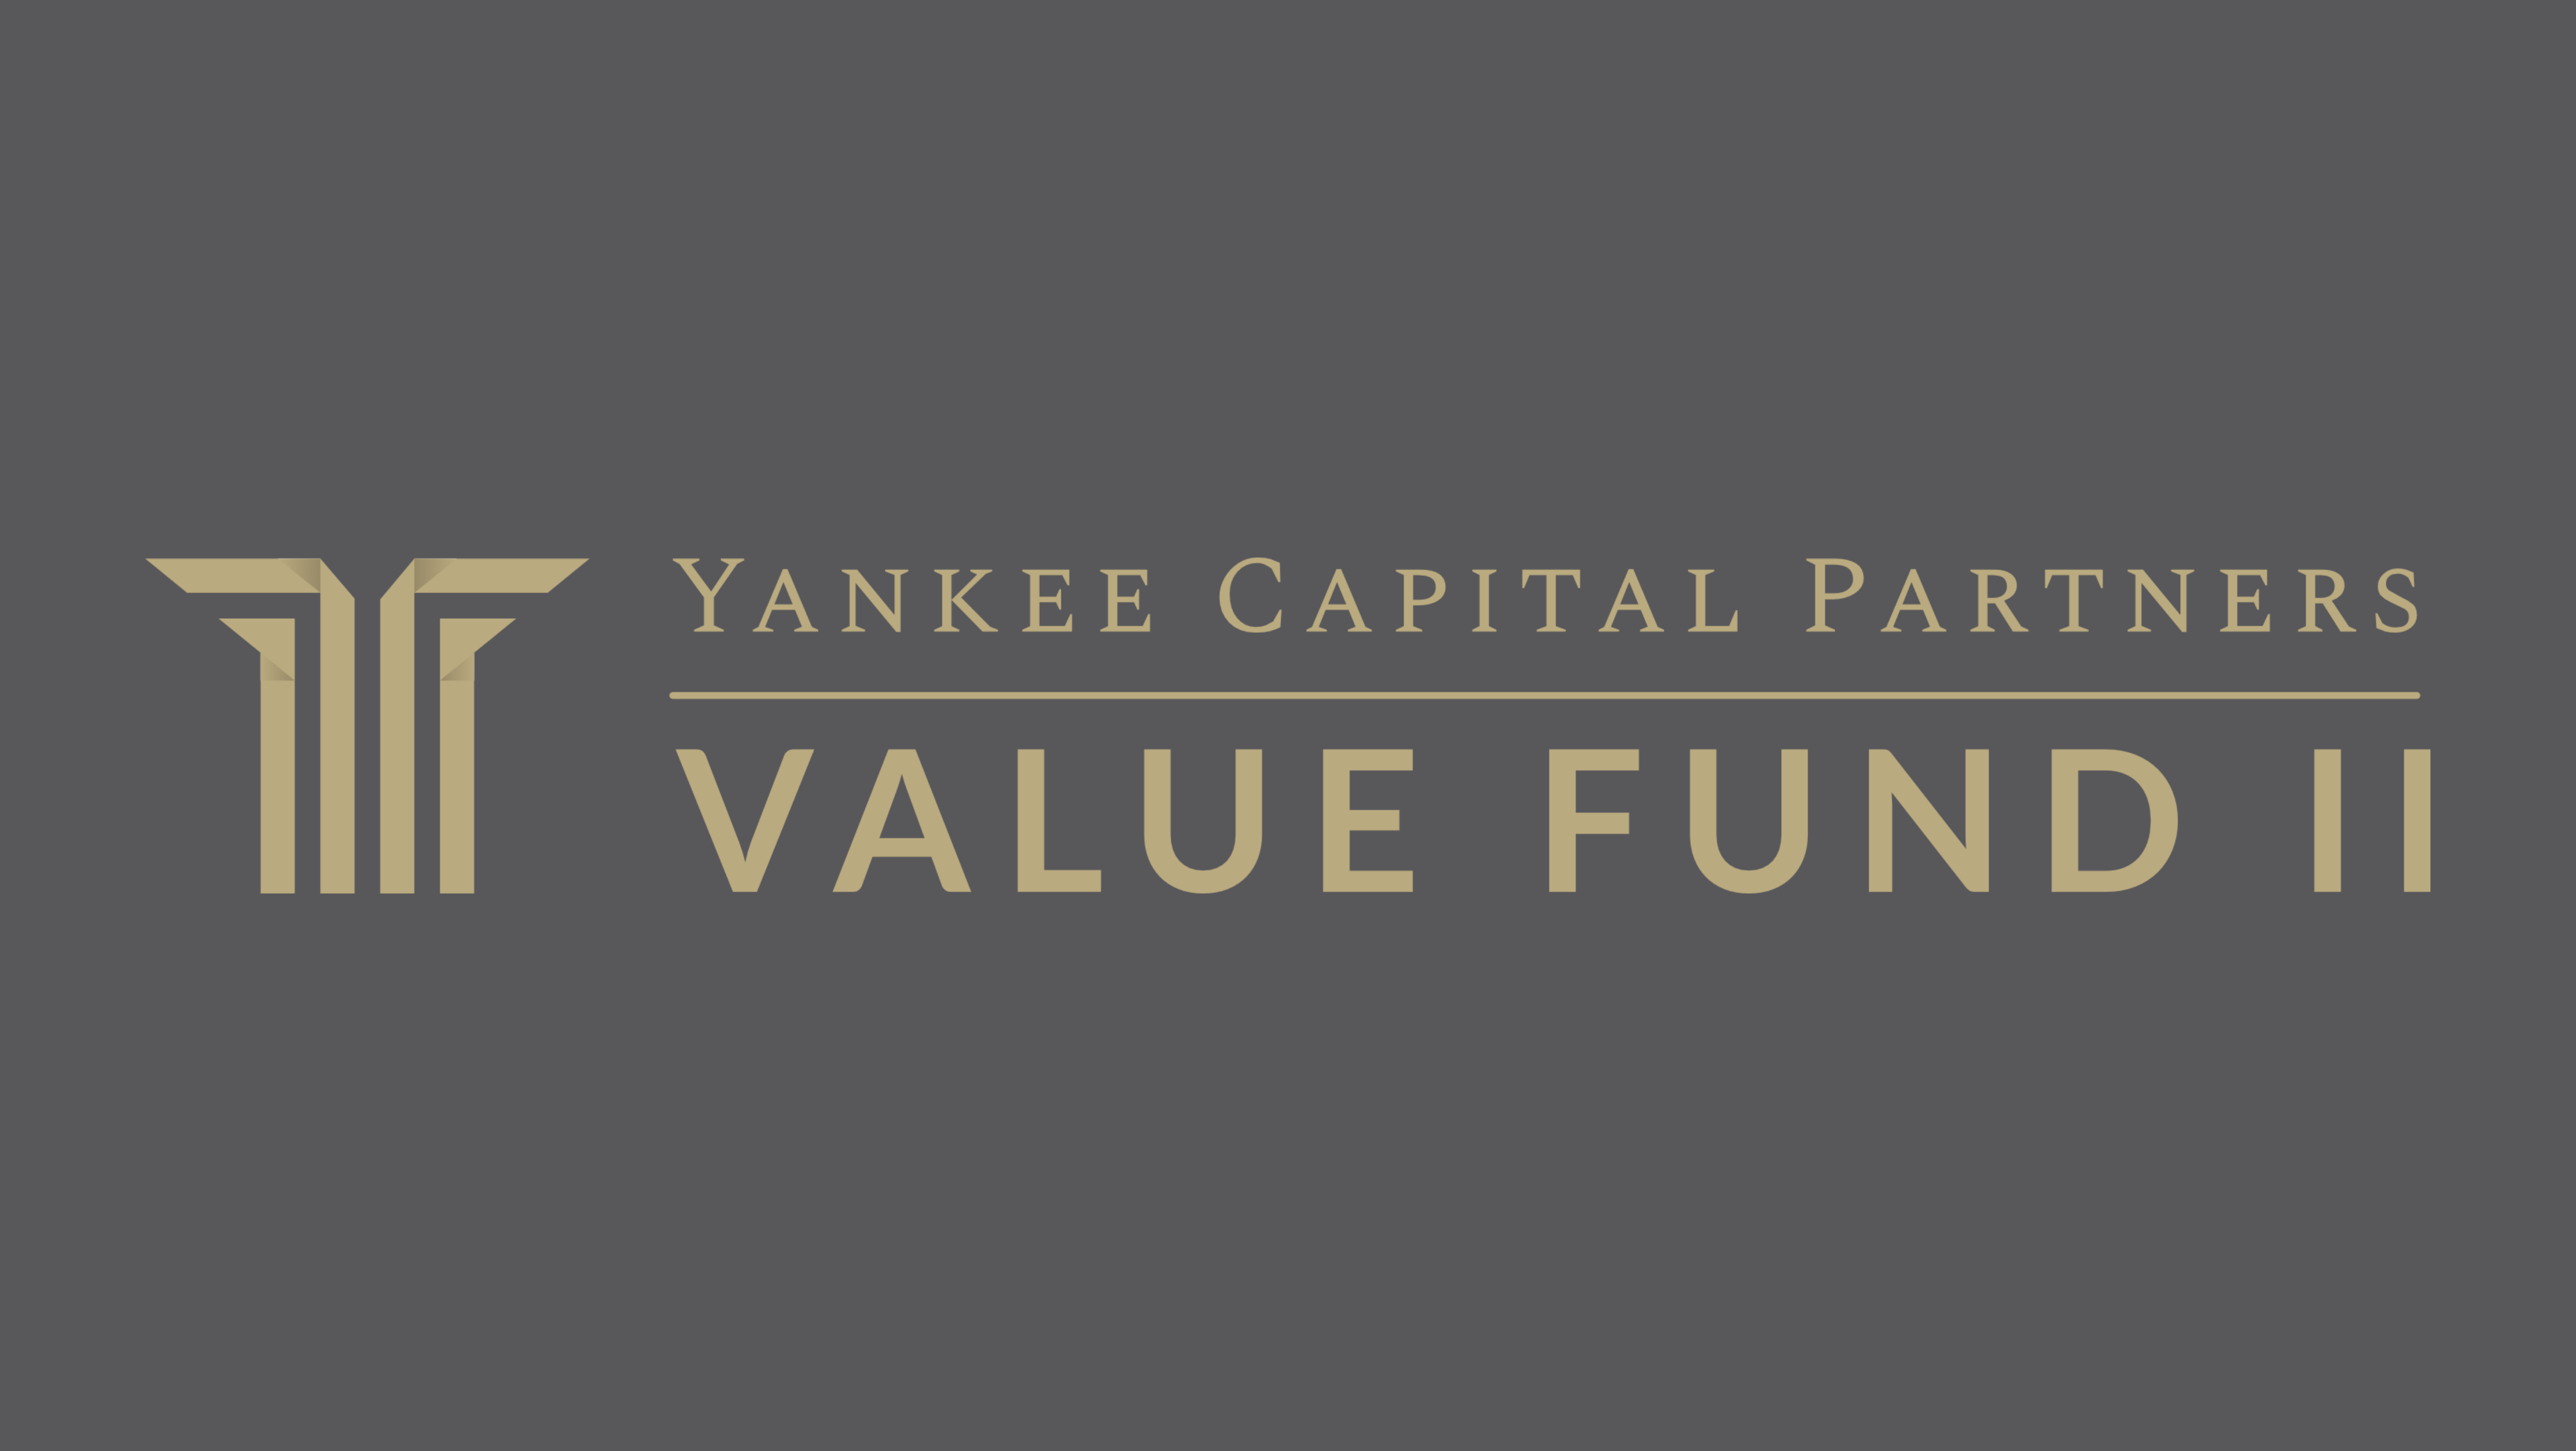 Yankee Capital Partner Value Fund II